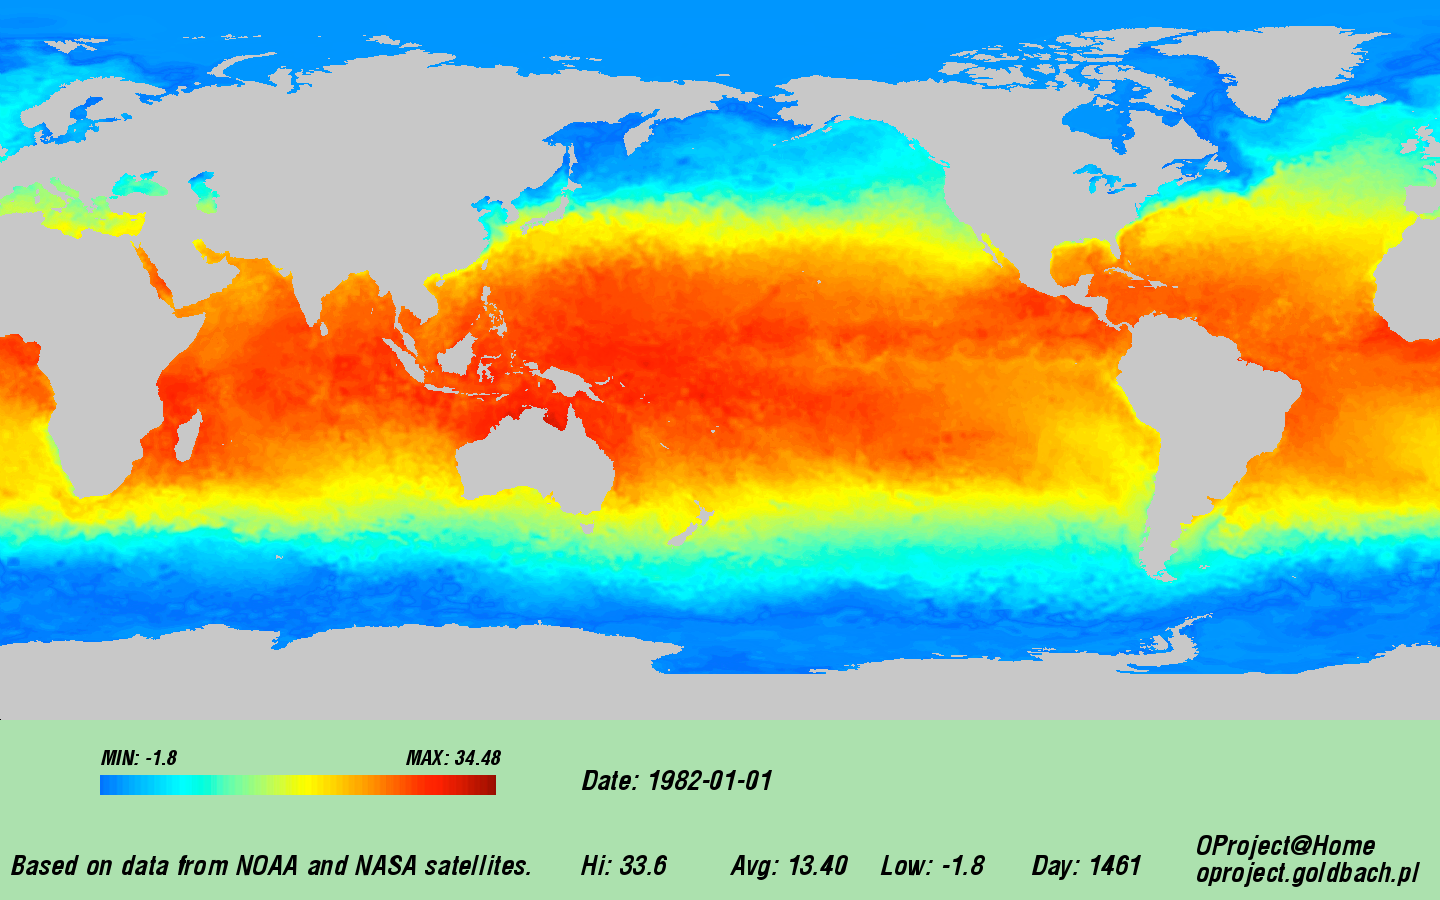 File:Oproject climate sst 1461.png